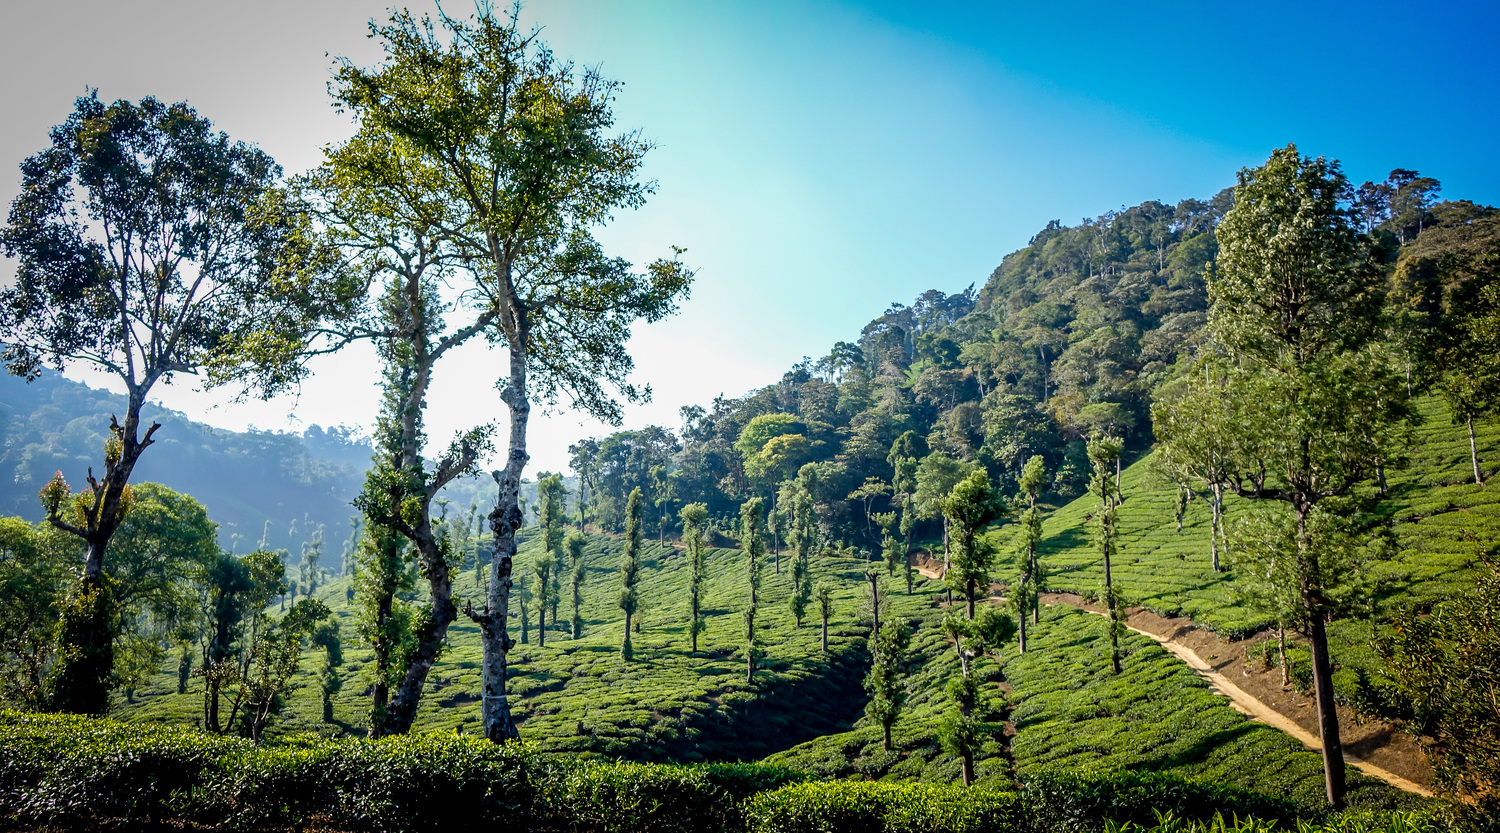 The herbs in HANAH ONE are harvested in the beautiful hills of Kerala, India.